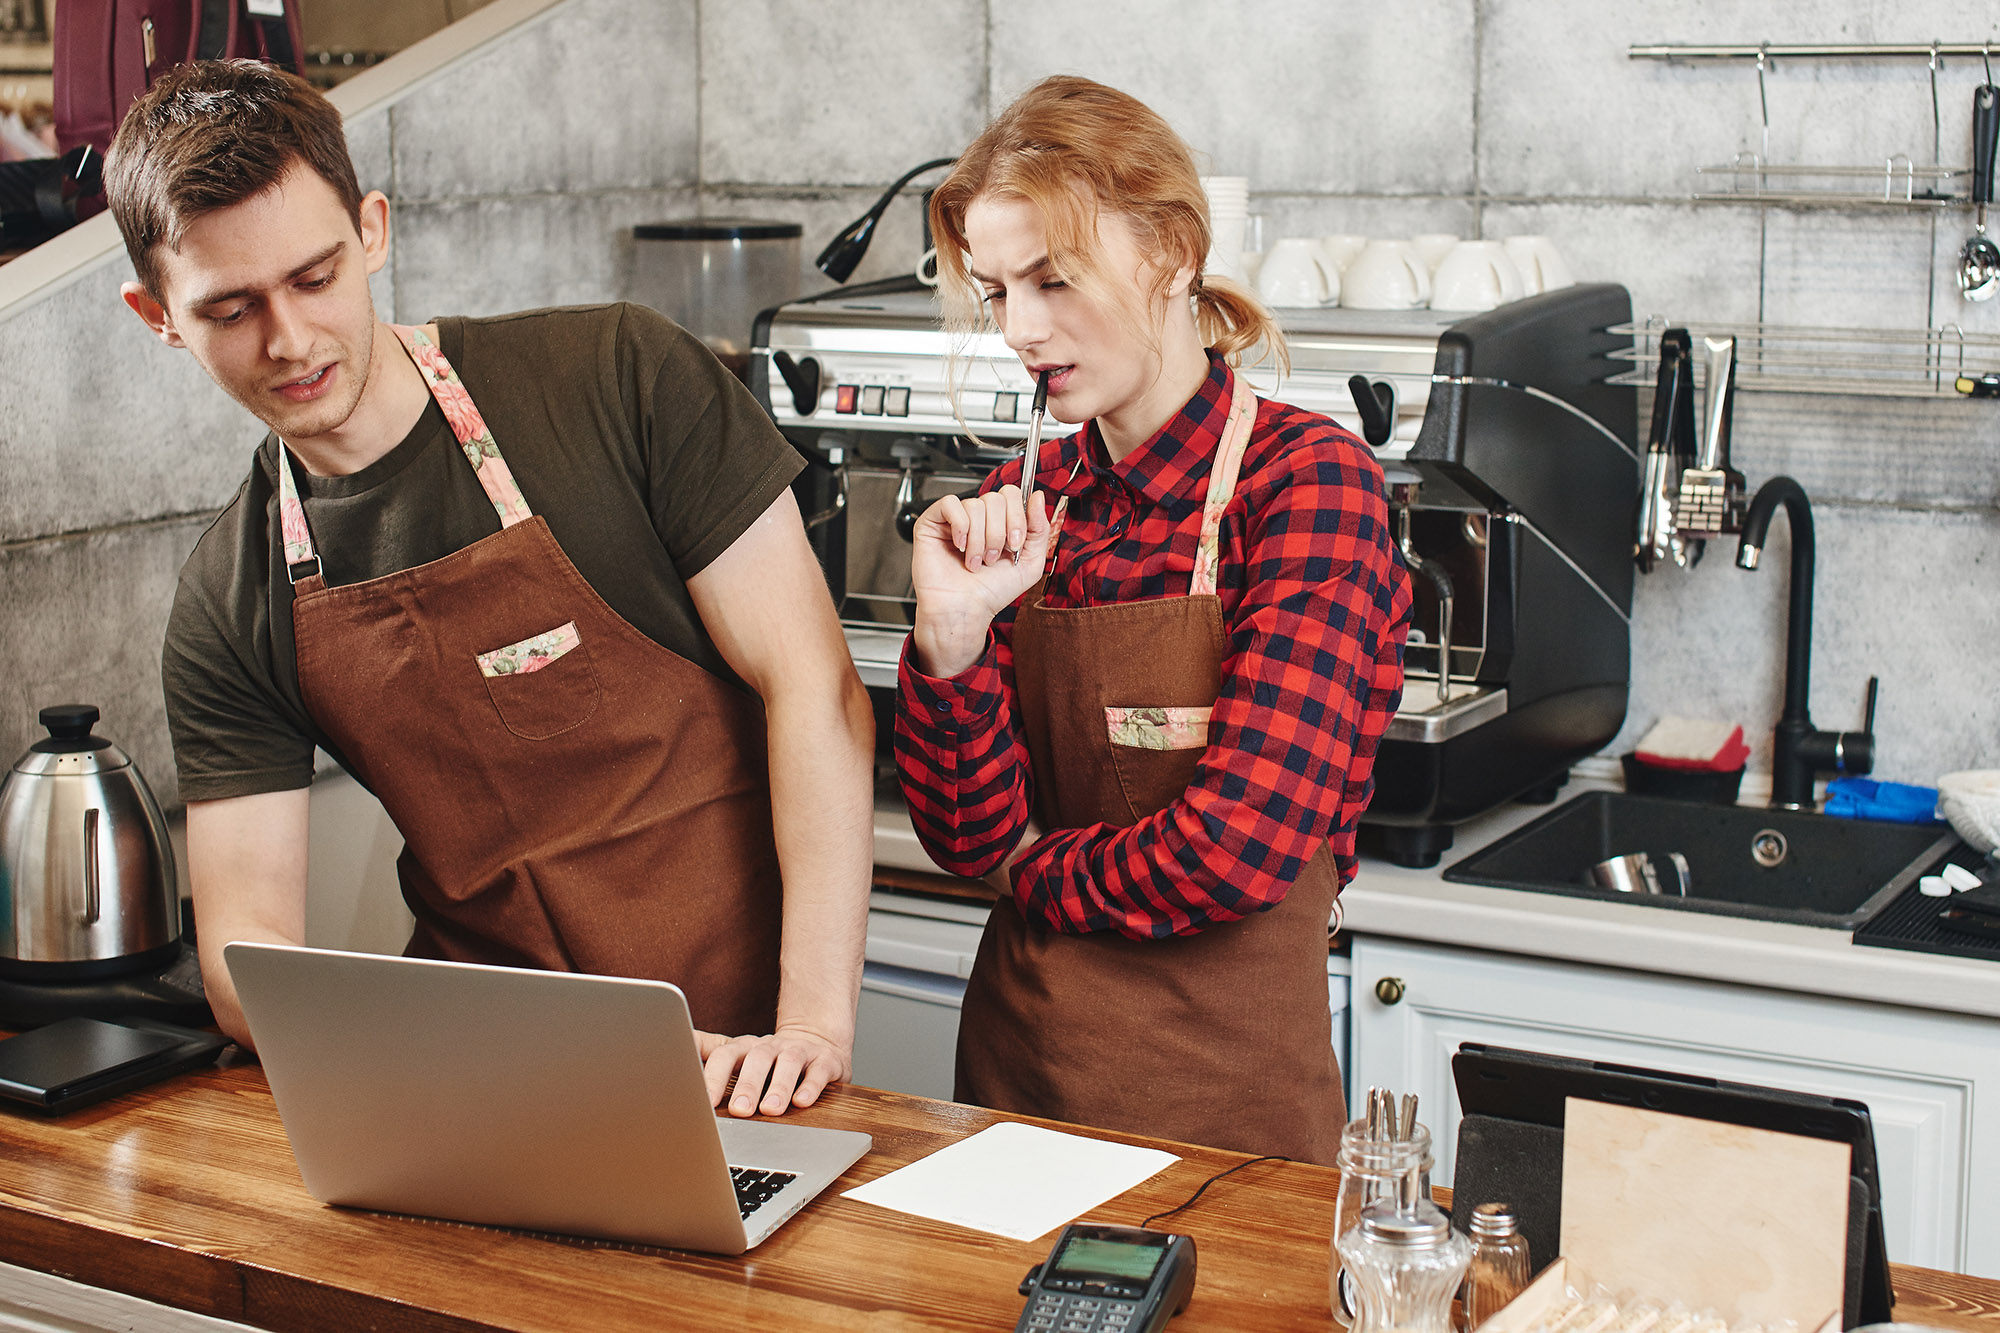 Two restaurant employees share a computer and discuss inventory